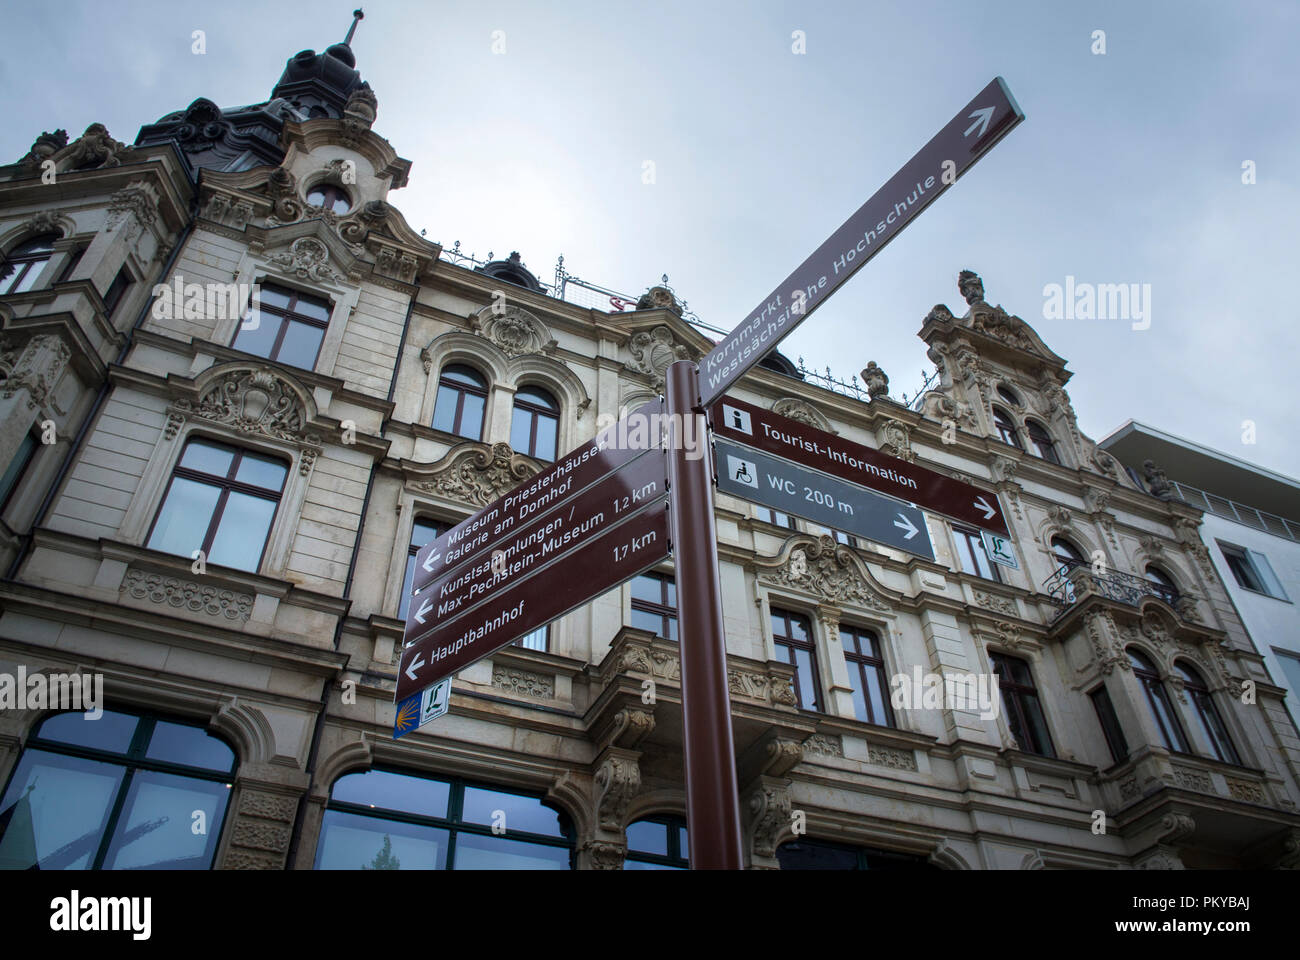 Directions in Zwickau town centre in Saxony, Germany. - Stock Image